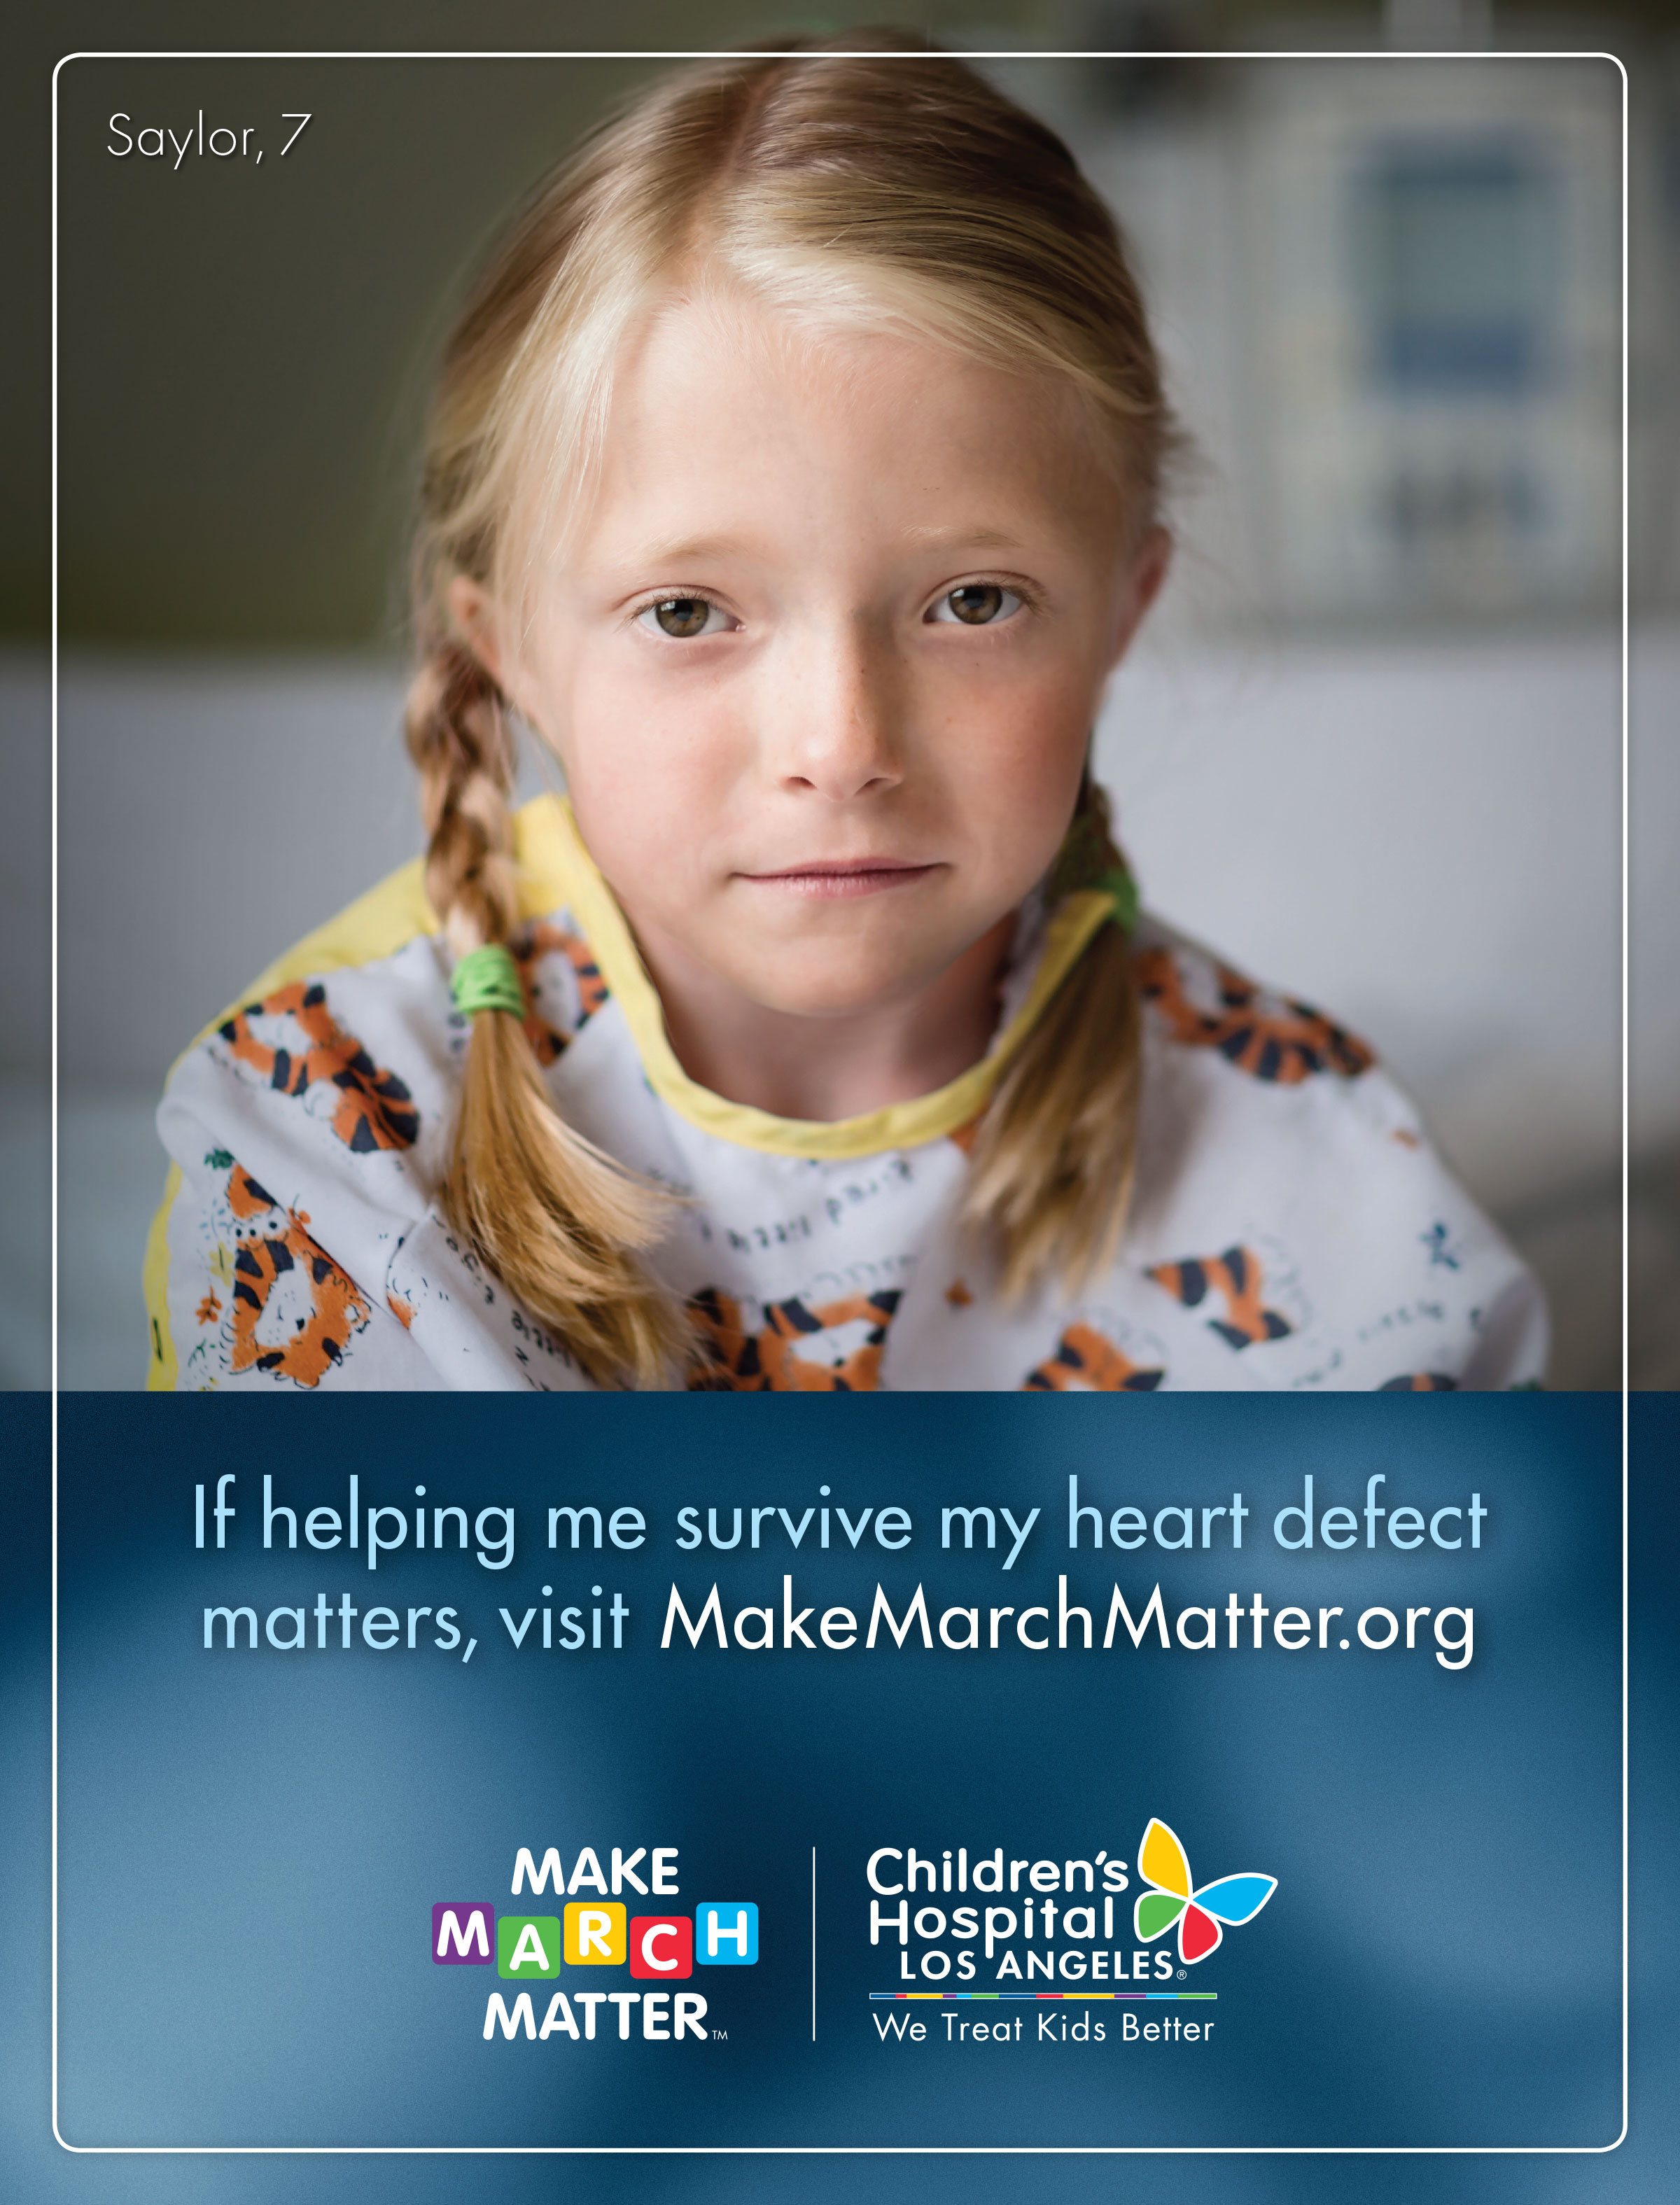 The Make March Matter 2017 campaign ad with patient Saylor Pierson, 7. (Photo: Business Wire)